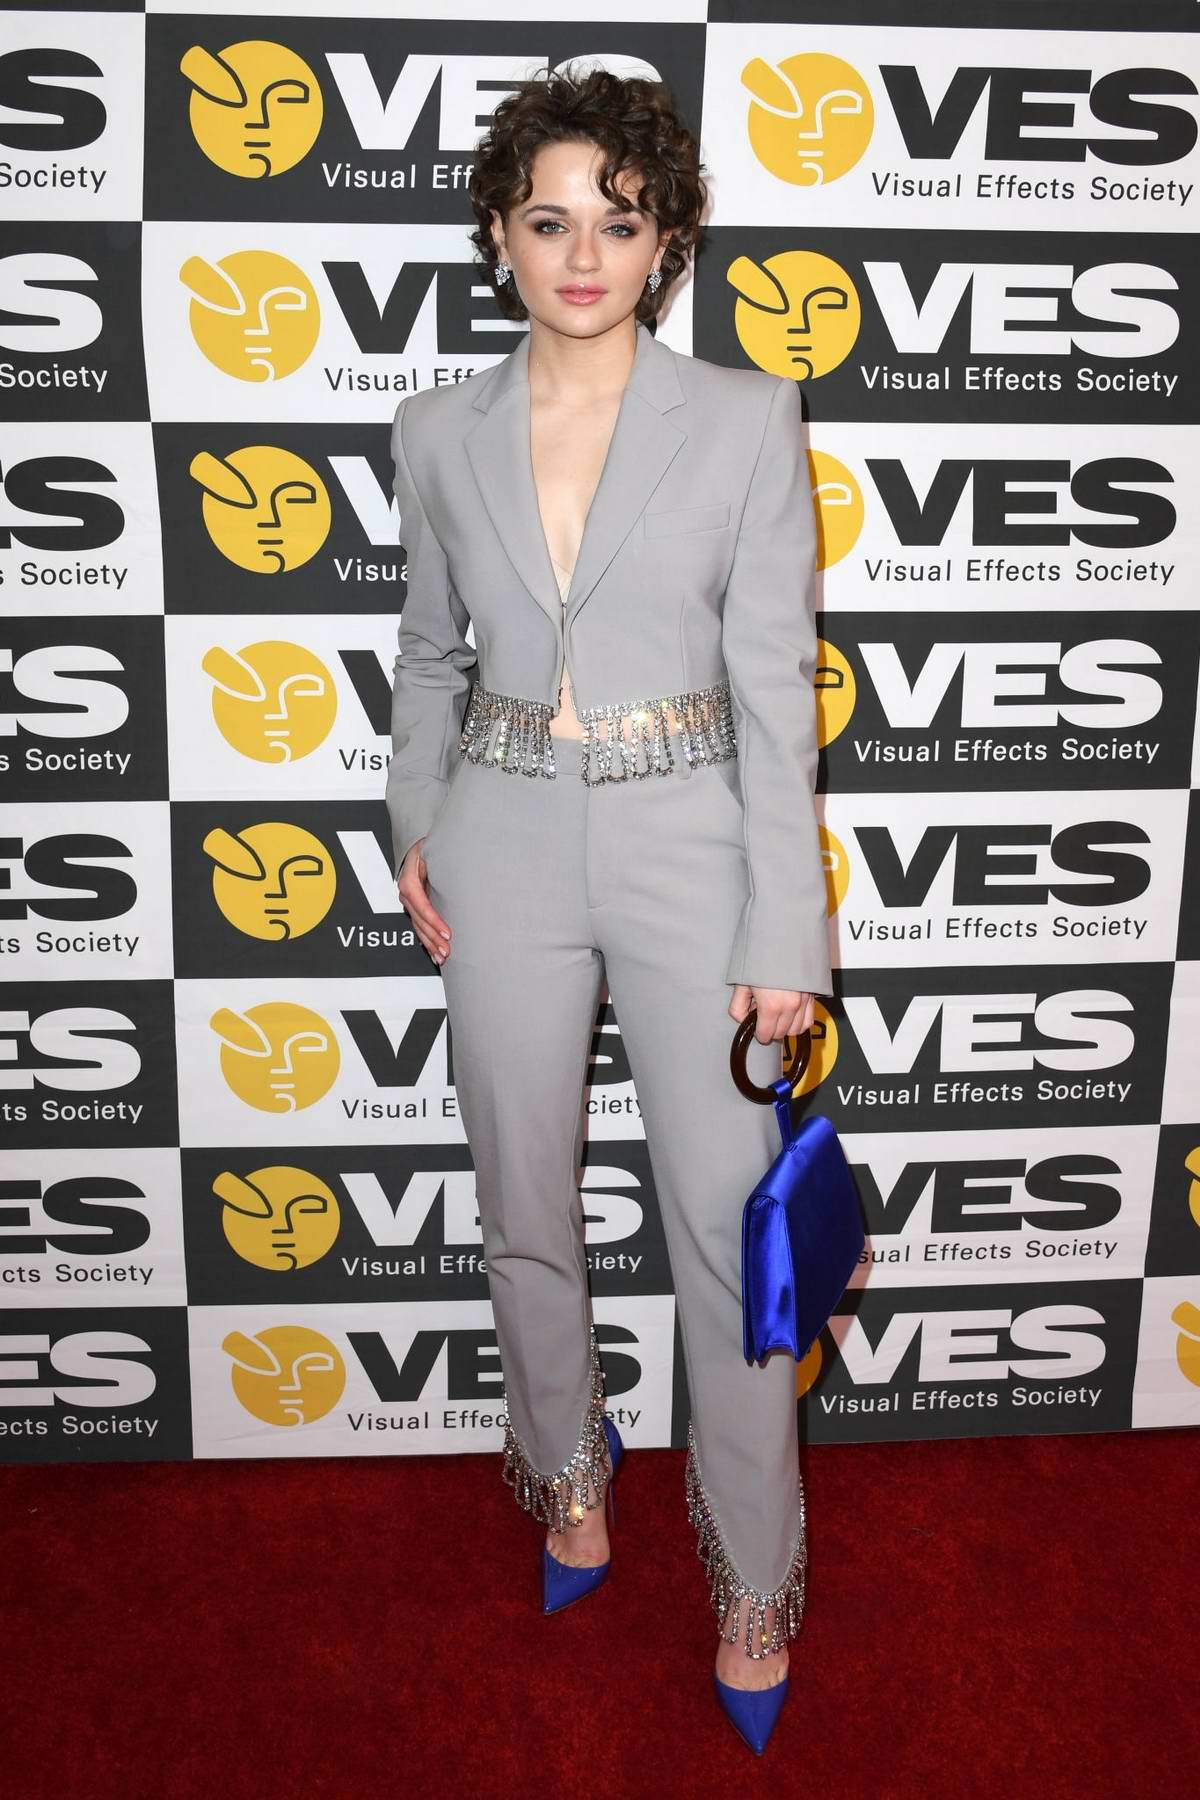 Joey King attends the 18th Annual Visual Effects Society Awards in Beverly Hills, California